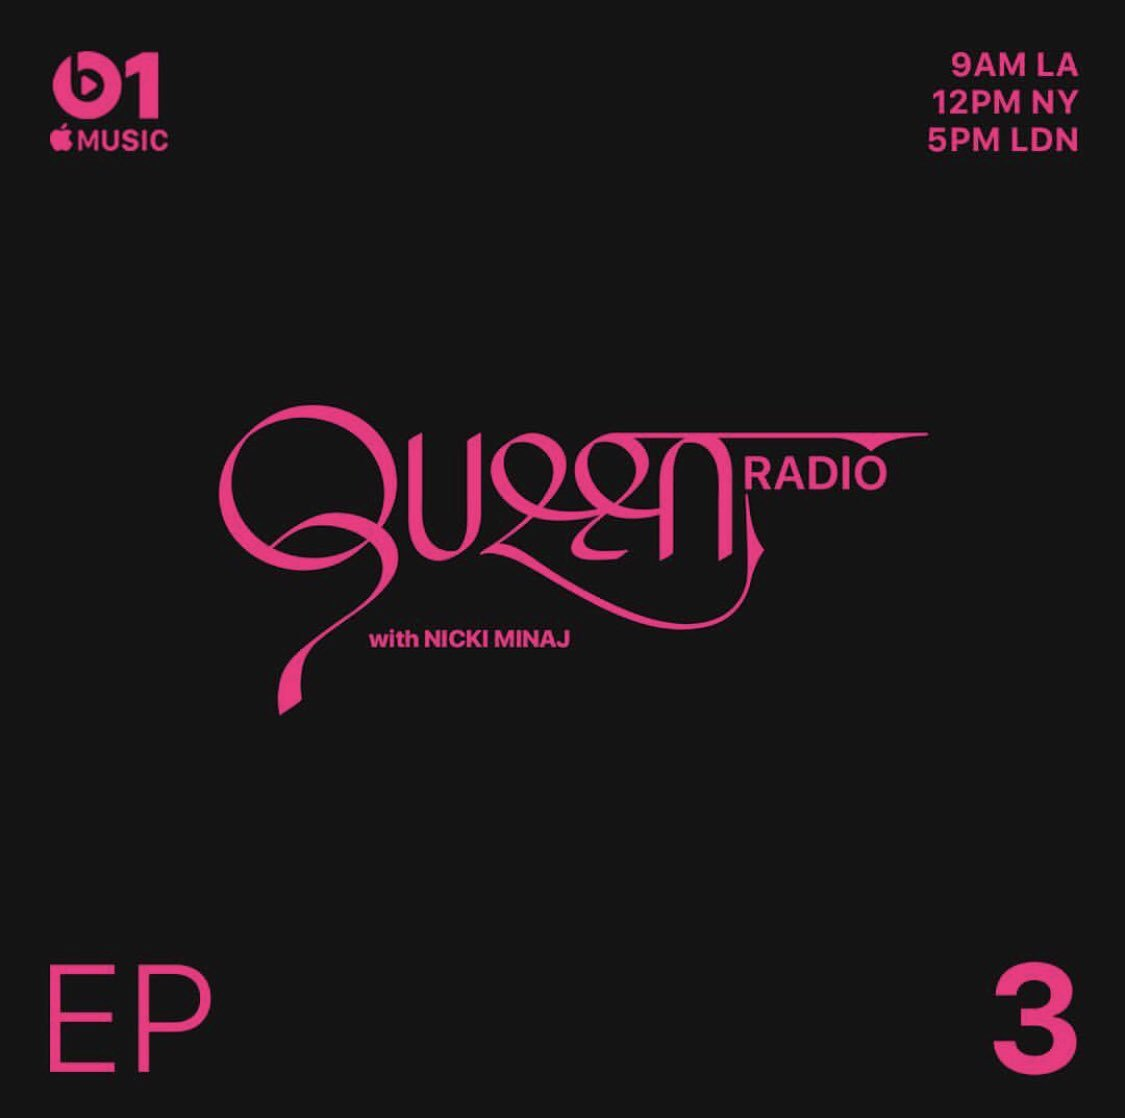 Tomorrow @ noon EST #QueenRadio @AppleMusic https://t.co/2Gi45YOodt